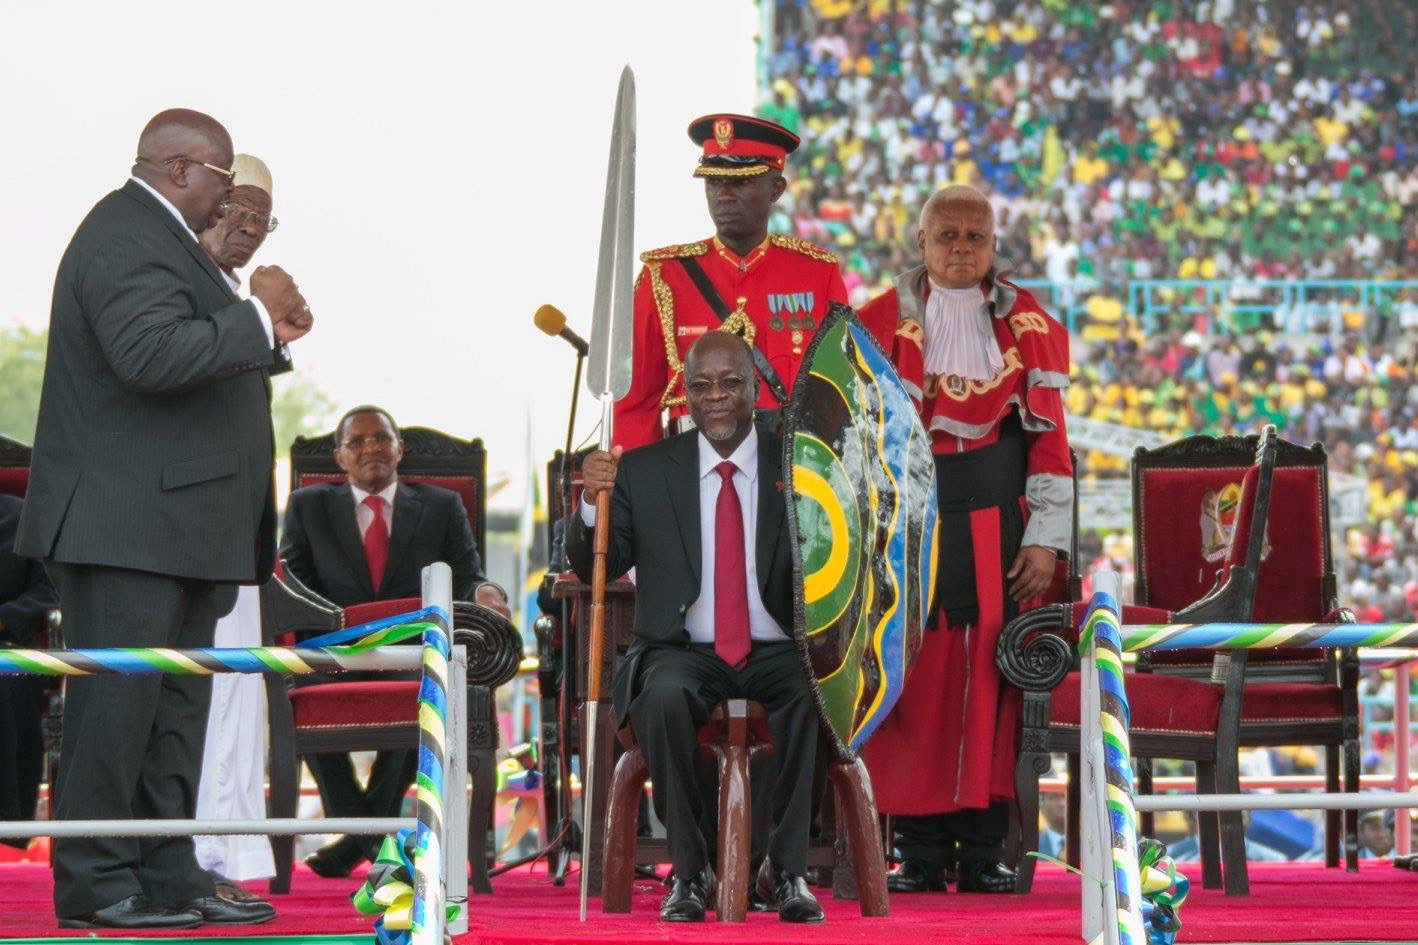 Tanzania's John Magufuli Sworn In As President For Second Term In Office -  The Spy